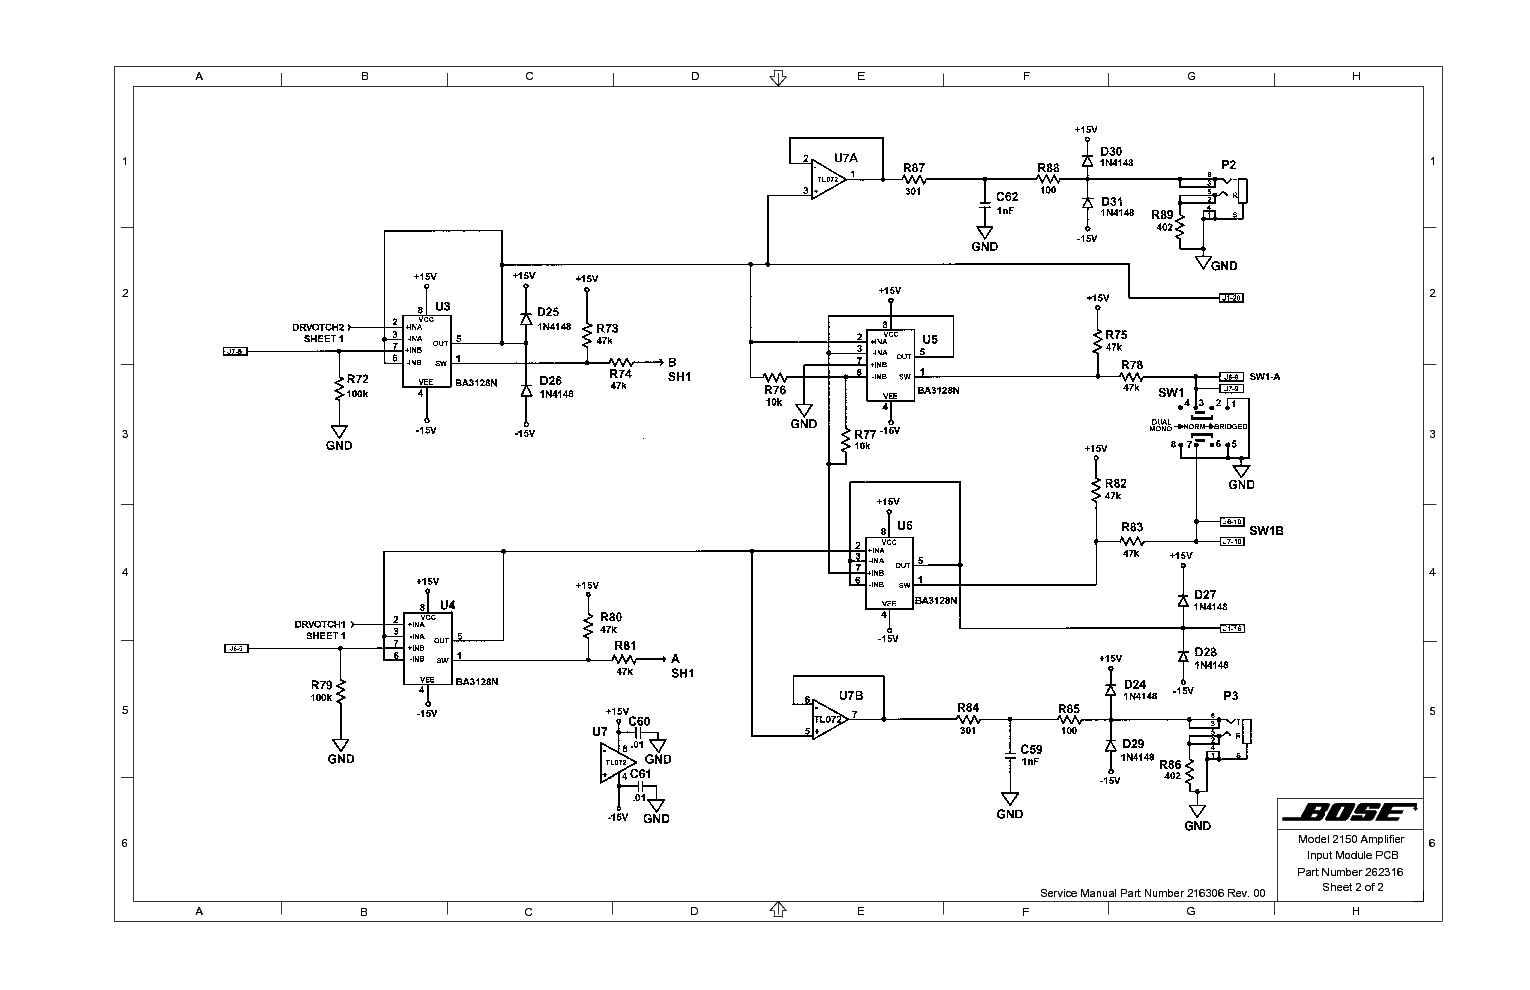 Silverado Wiring Diagram On Wiring Diagram For 2007 Cadillac Cts